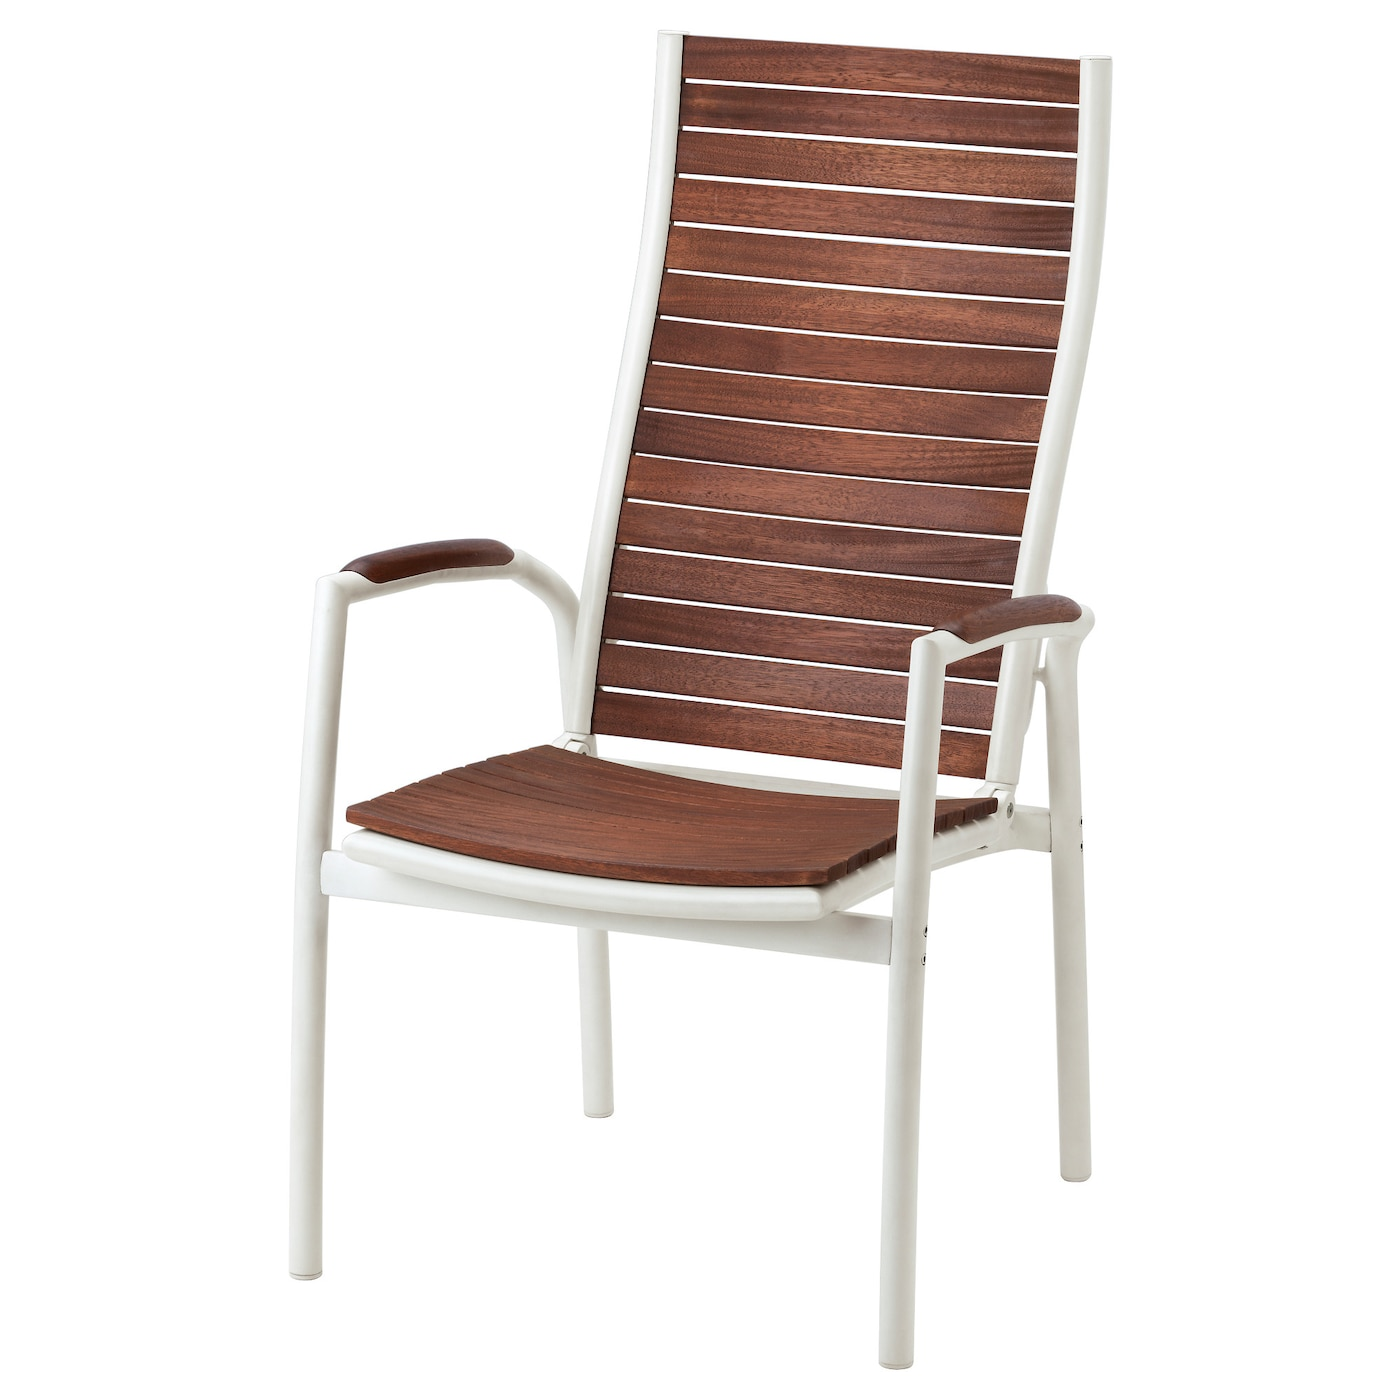 VINDALSÖ Reclining chair outdoor White brown stained IKEA